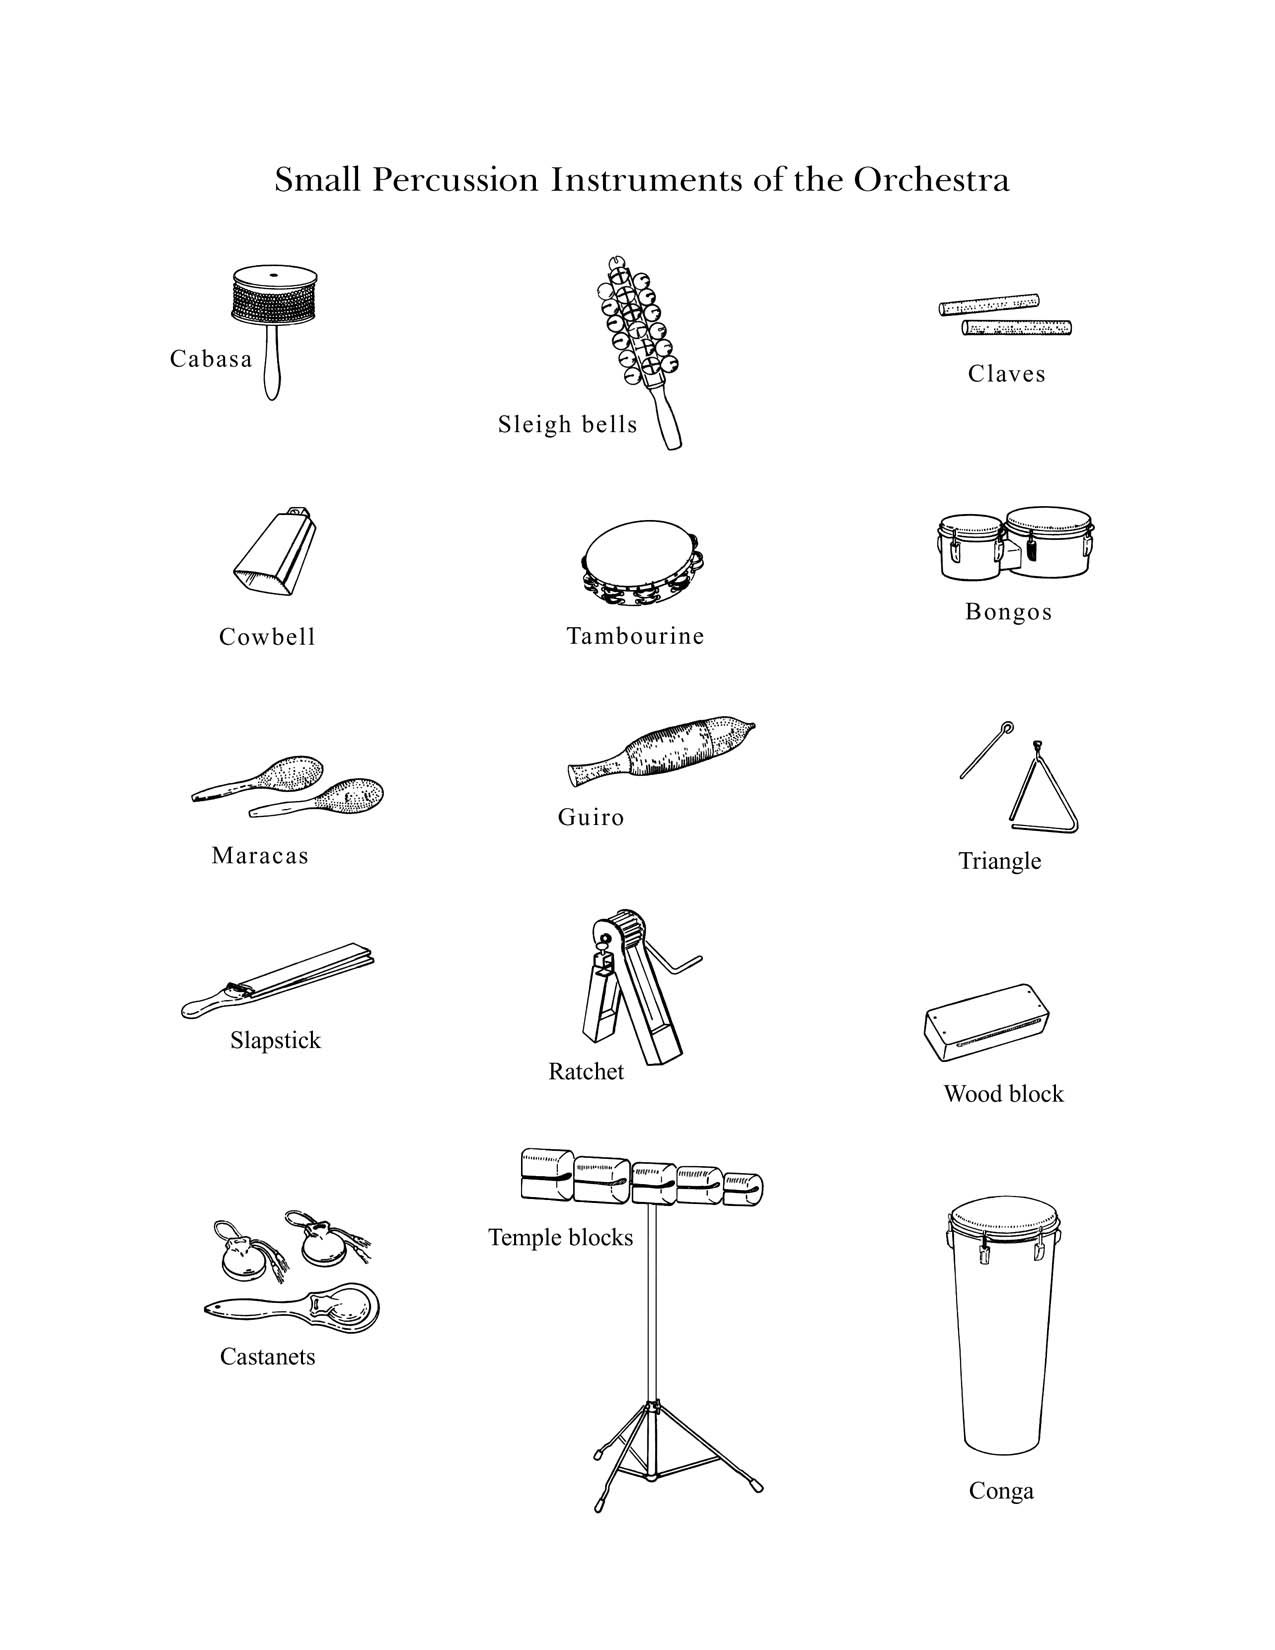 The Percussion Family Small Drawings Of Small Instruments From The Percussion Family By The